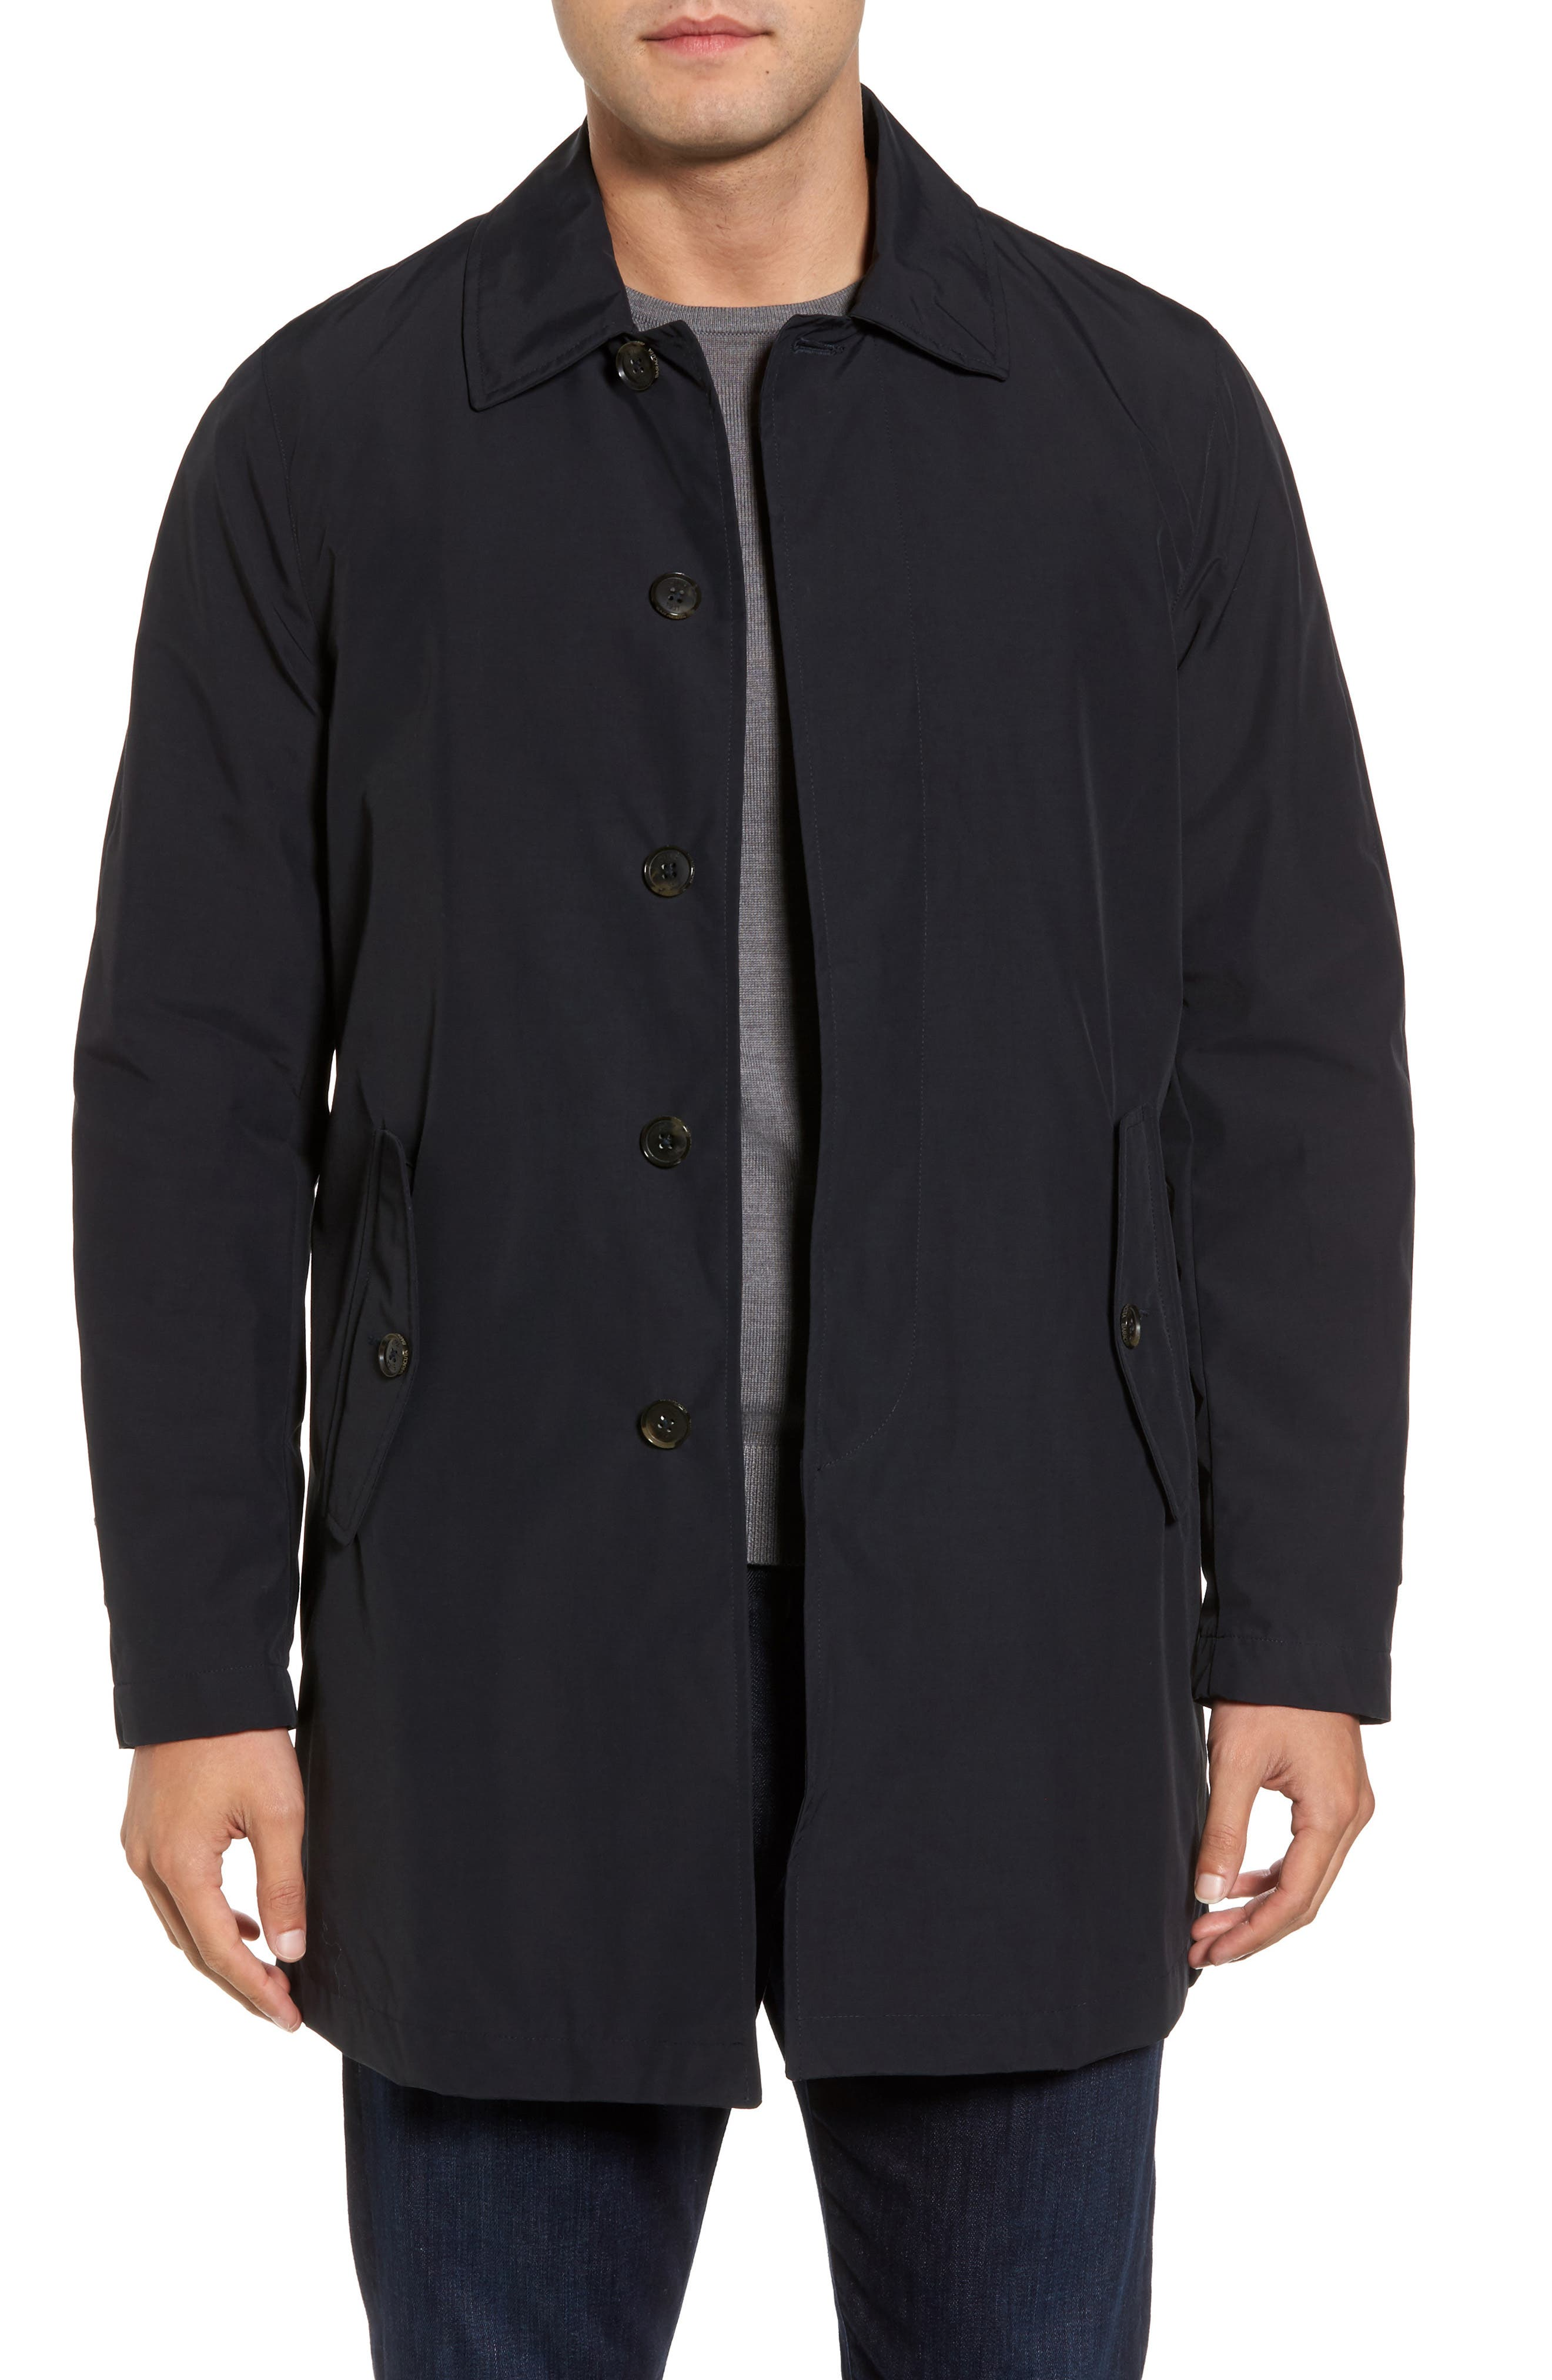 Waterproof Coat with Removable Liner,                             Main thumbnail 1, color,                             Dark Navy